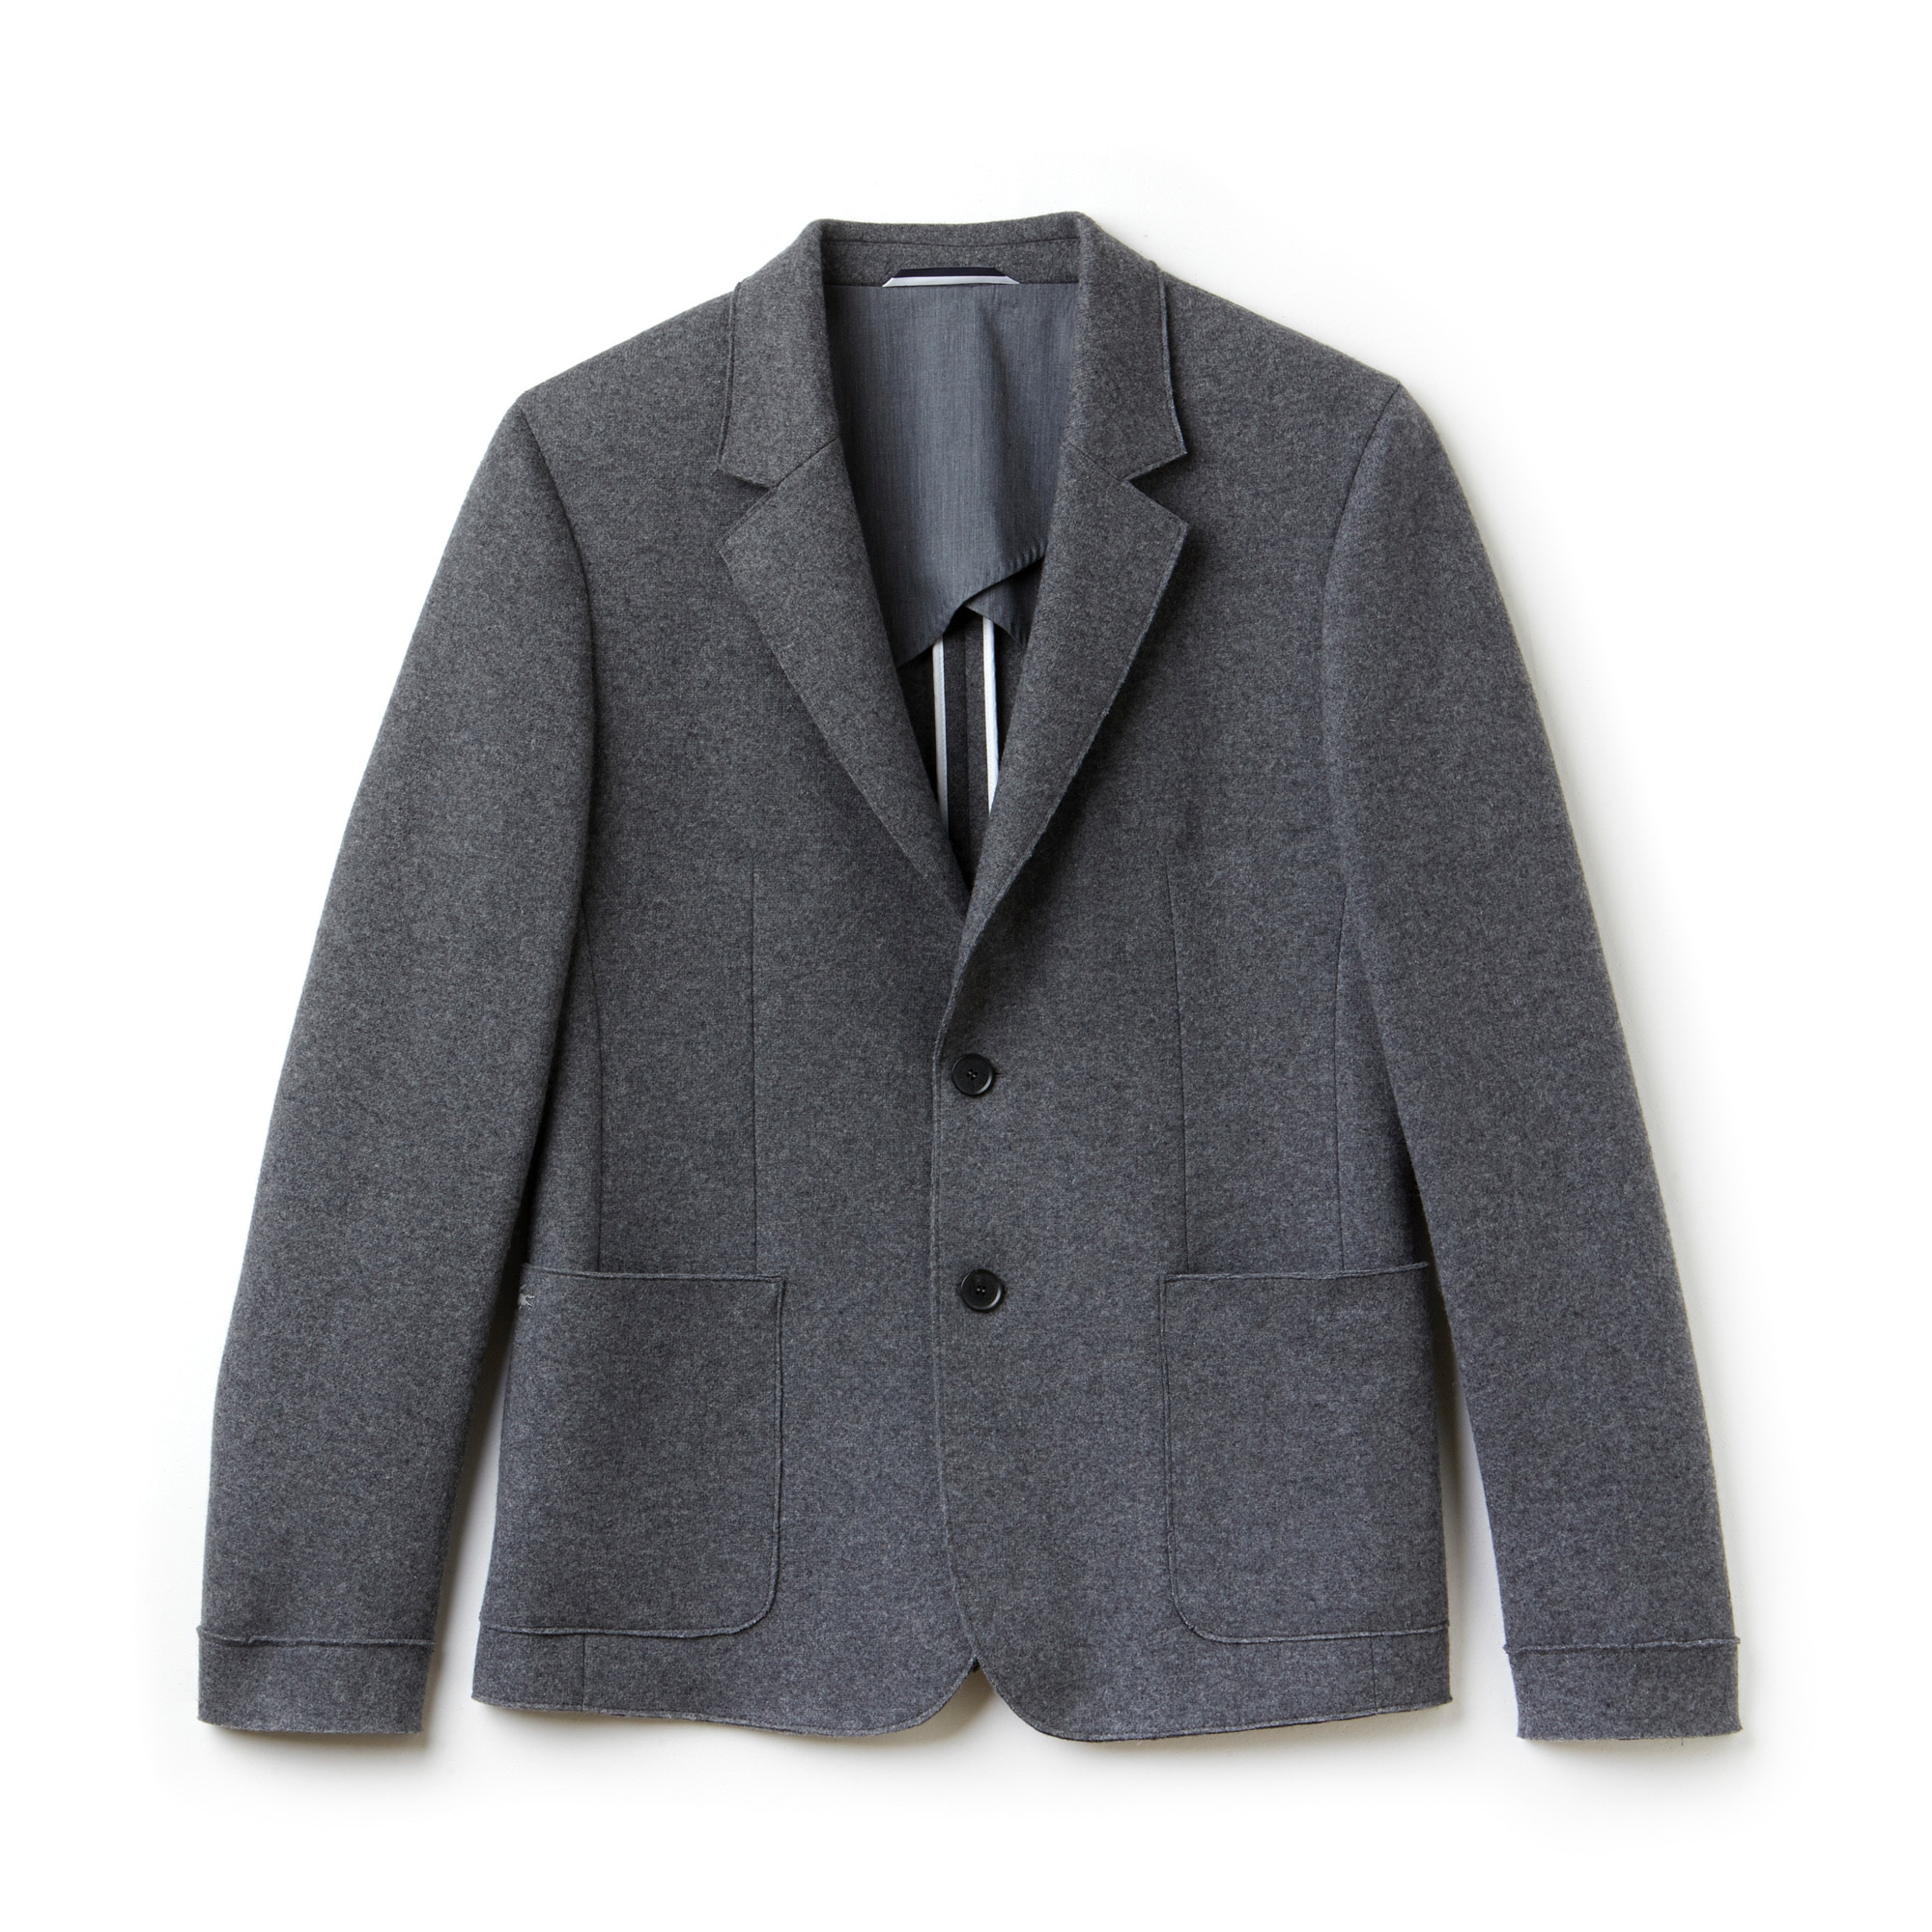 Men's Wool Broadcloth Suit Jacket